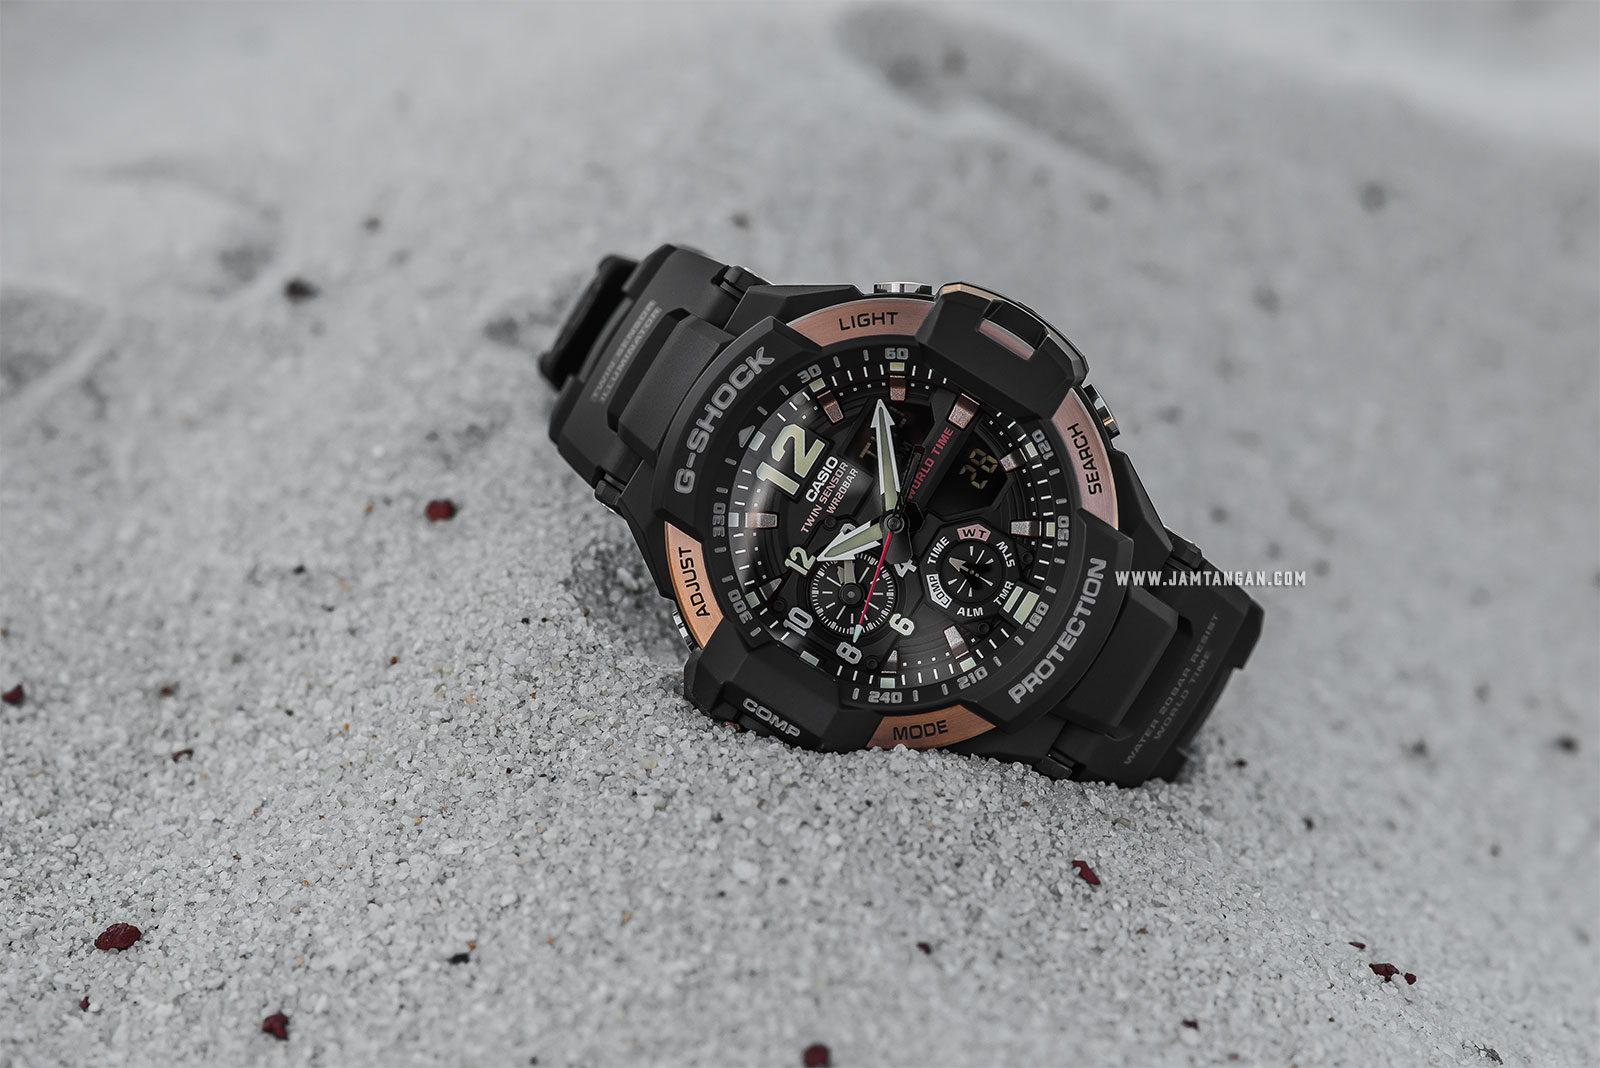 Casio G-Shock Gravitymaster GA-1100RG-1ADR Water Resistant 200M Resin Band Machtwatch